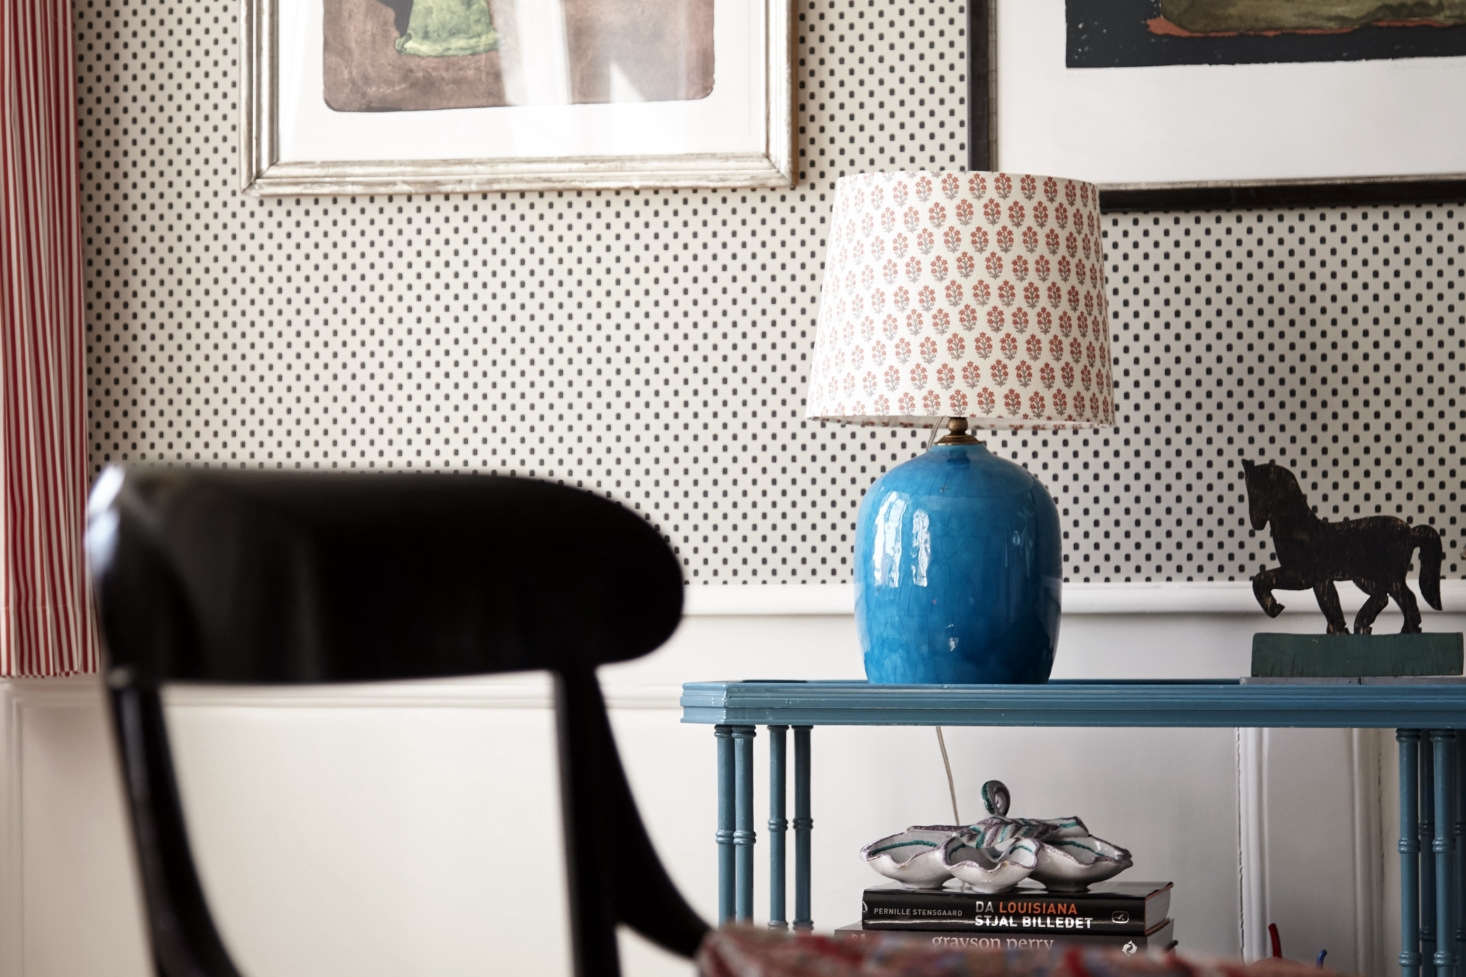 Old-fashioned table lamps with printed fabric shades are another Tina specialty: see Trend Alert: The Return of the Artfully Patterned Lampshade. The horse is part of an Americana whirligig.